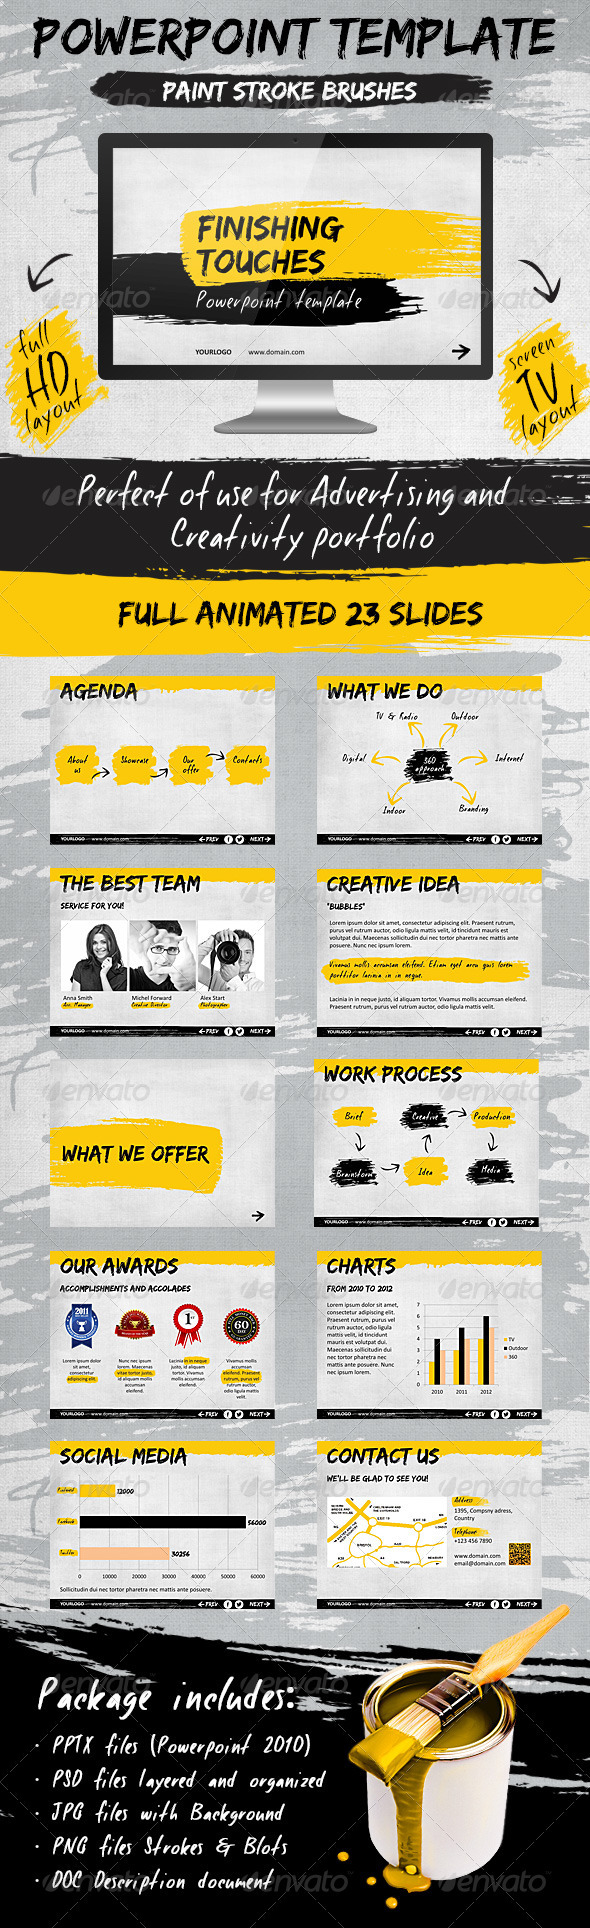 Finishing Touches Template - Powerpoint Templates Presentation Templates